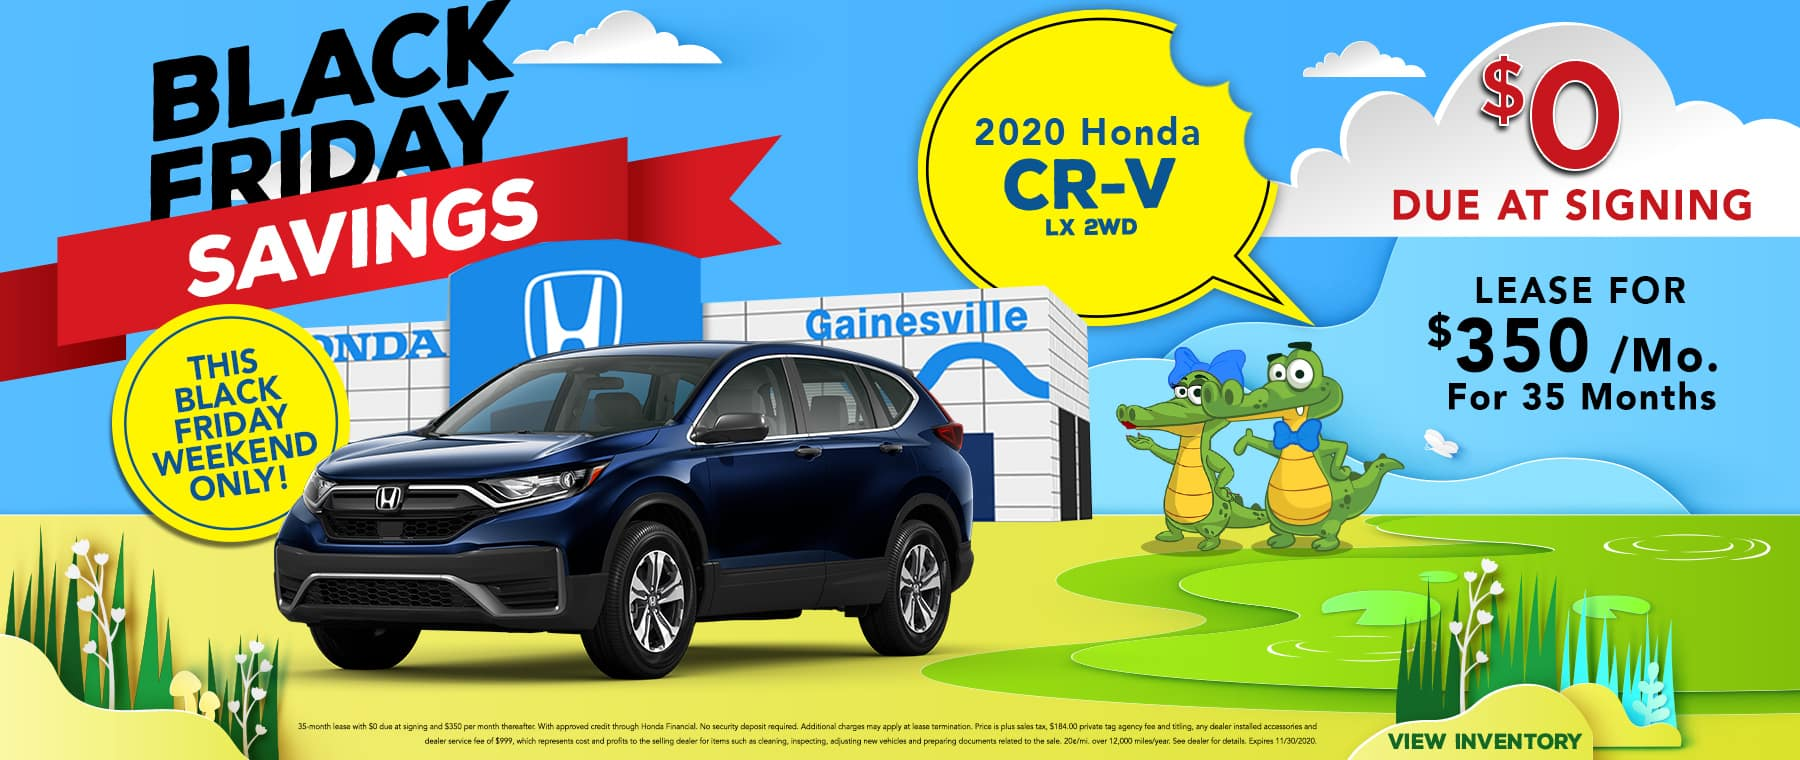 Black Friday Savings | 2020 Honda CR-V 2WD LX | Lease For $350/Month with $0 Due At Signing